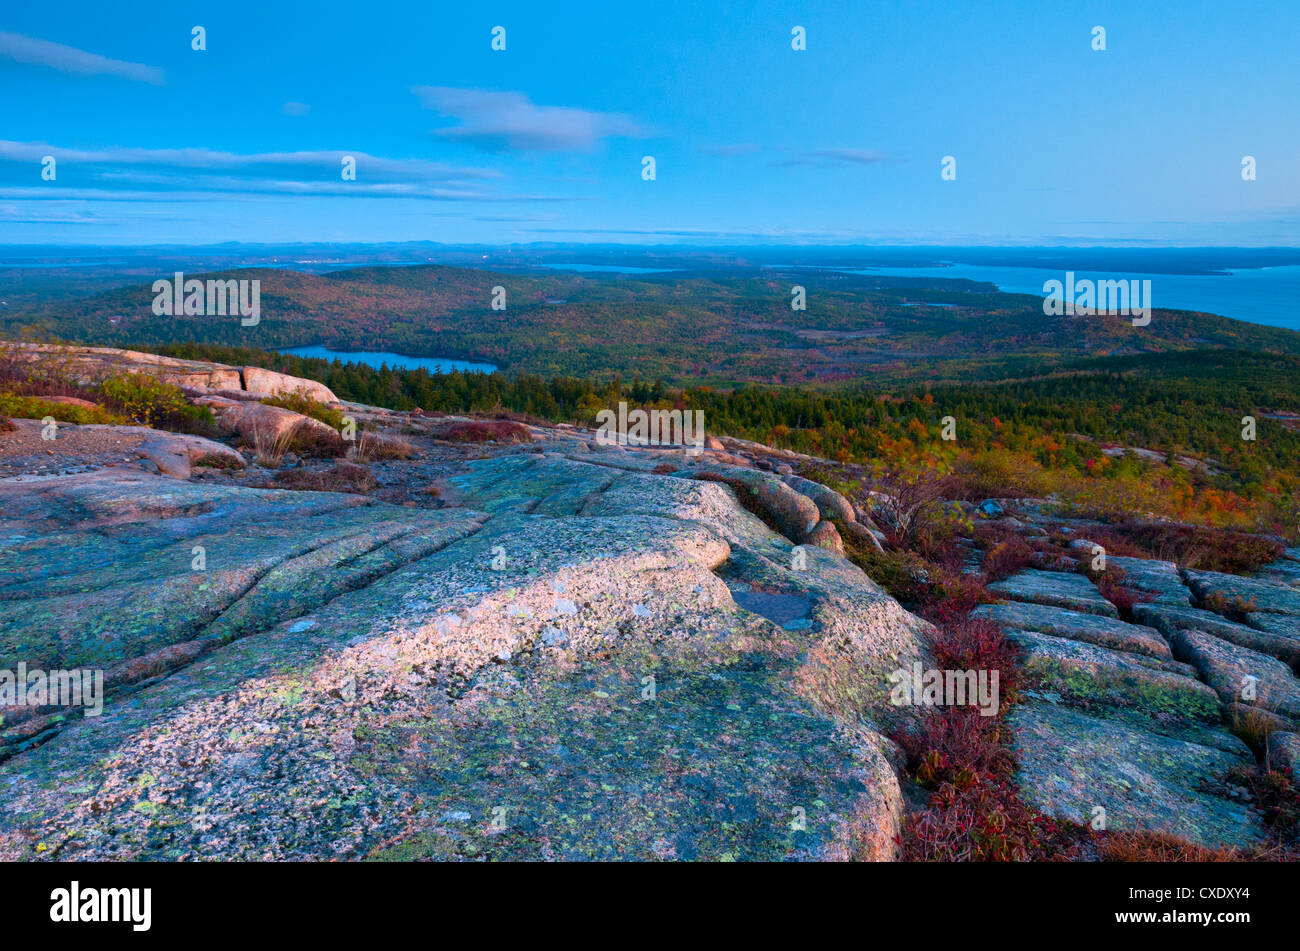 View from Cadillac Mountain, Acadia National Park, Mount Desert Island, Maine, New England, United States of America - Stock Image